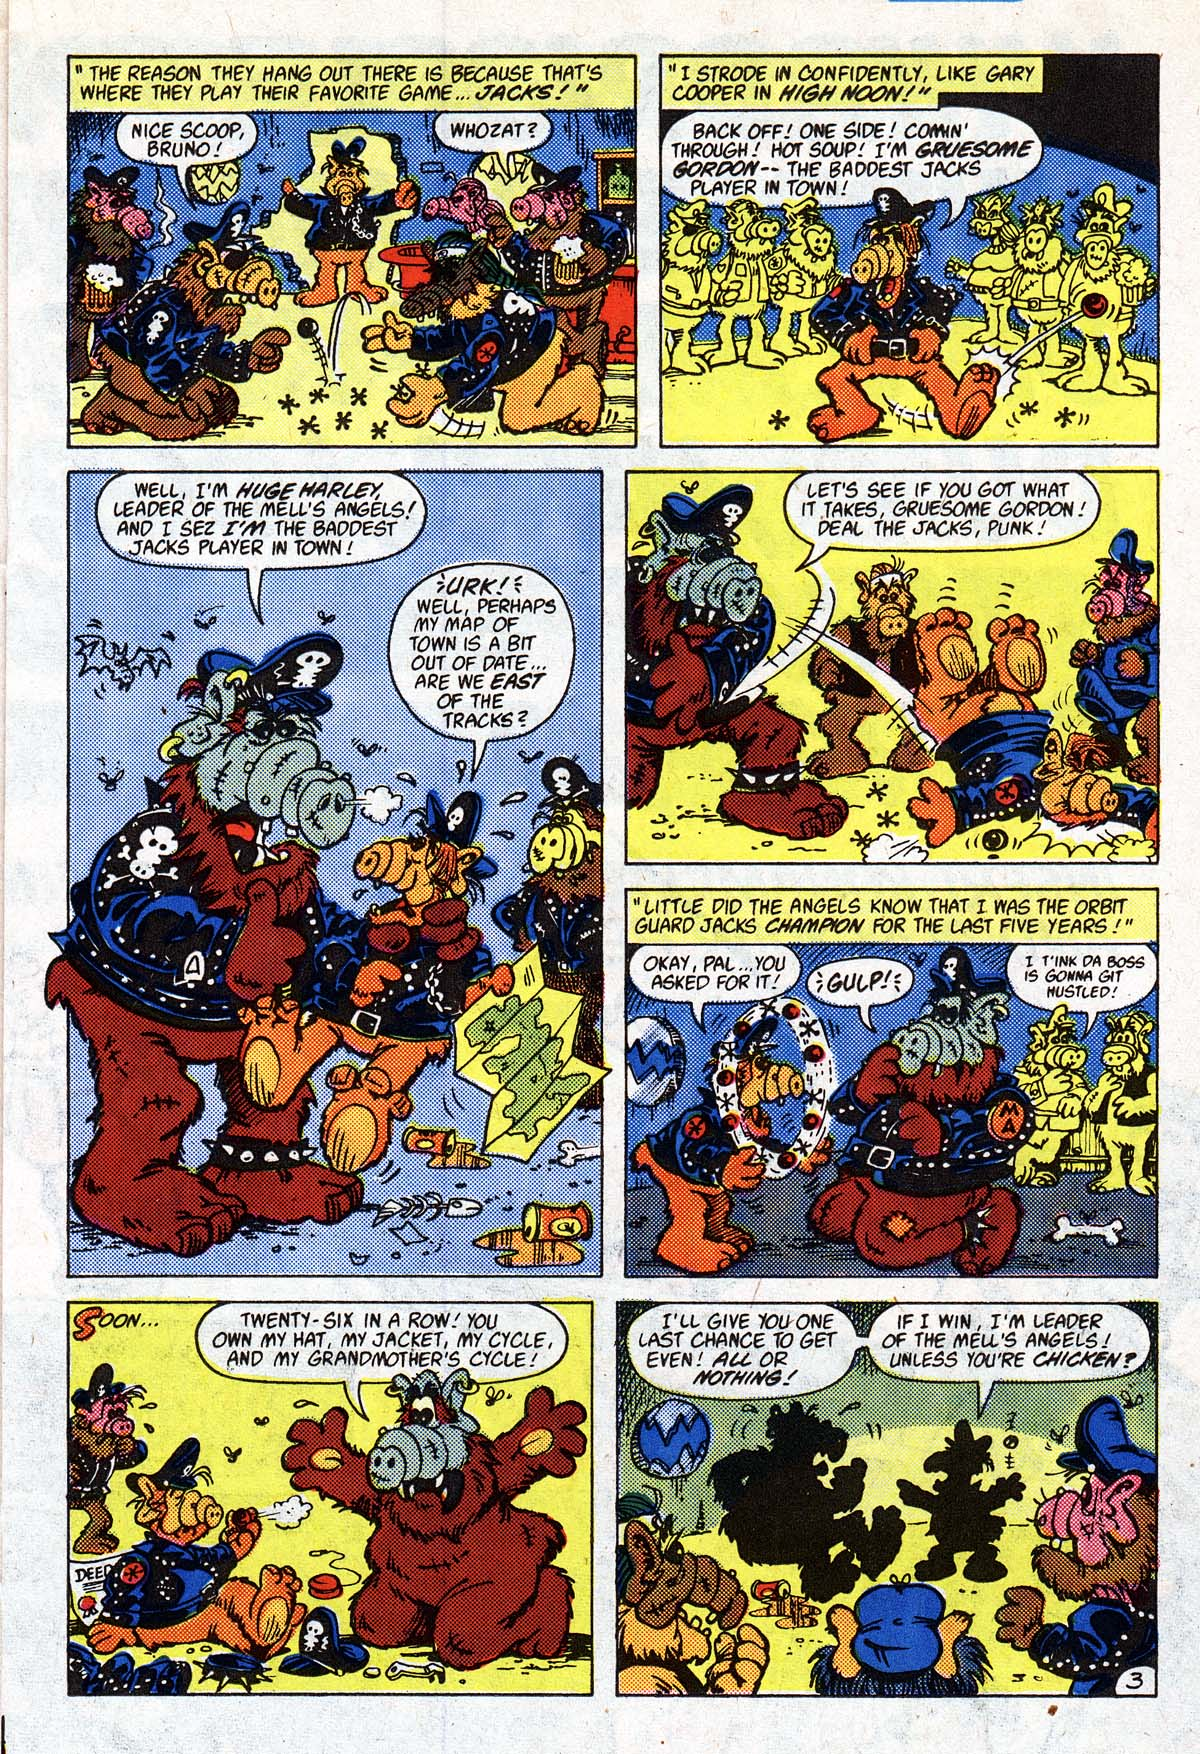 Read online ALF comic -  Issue #2 - 80